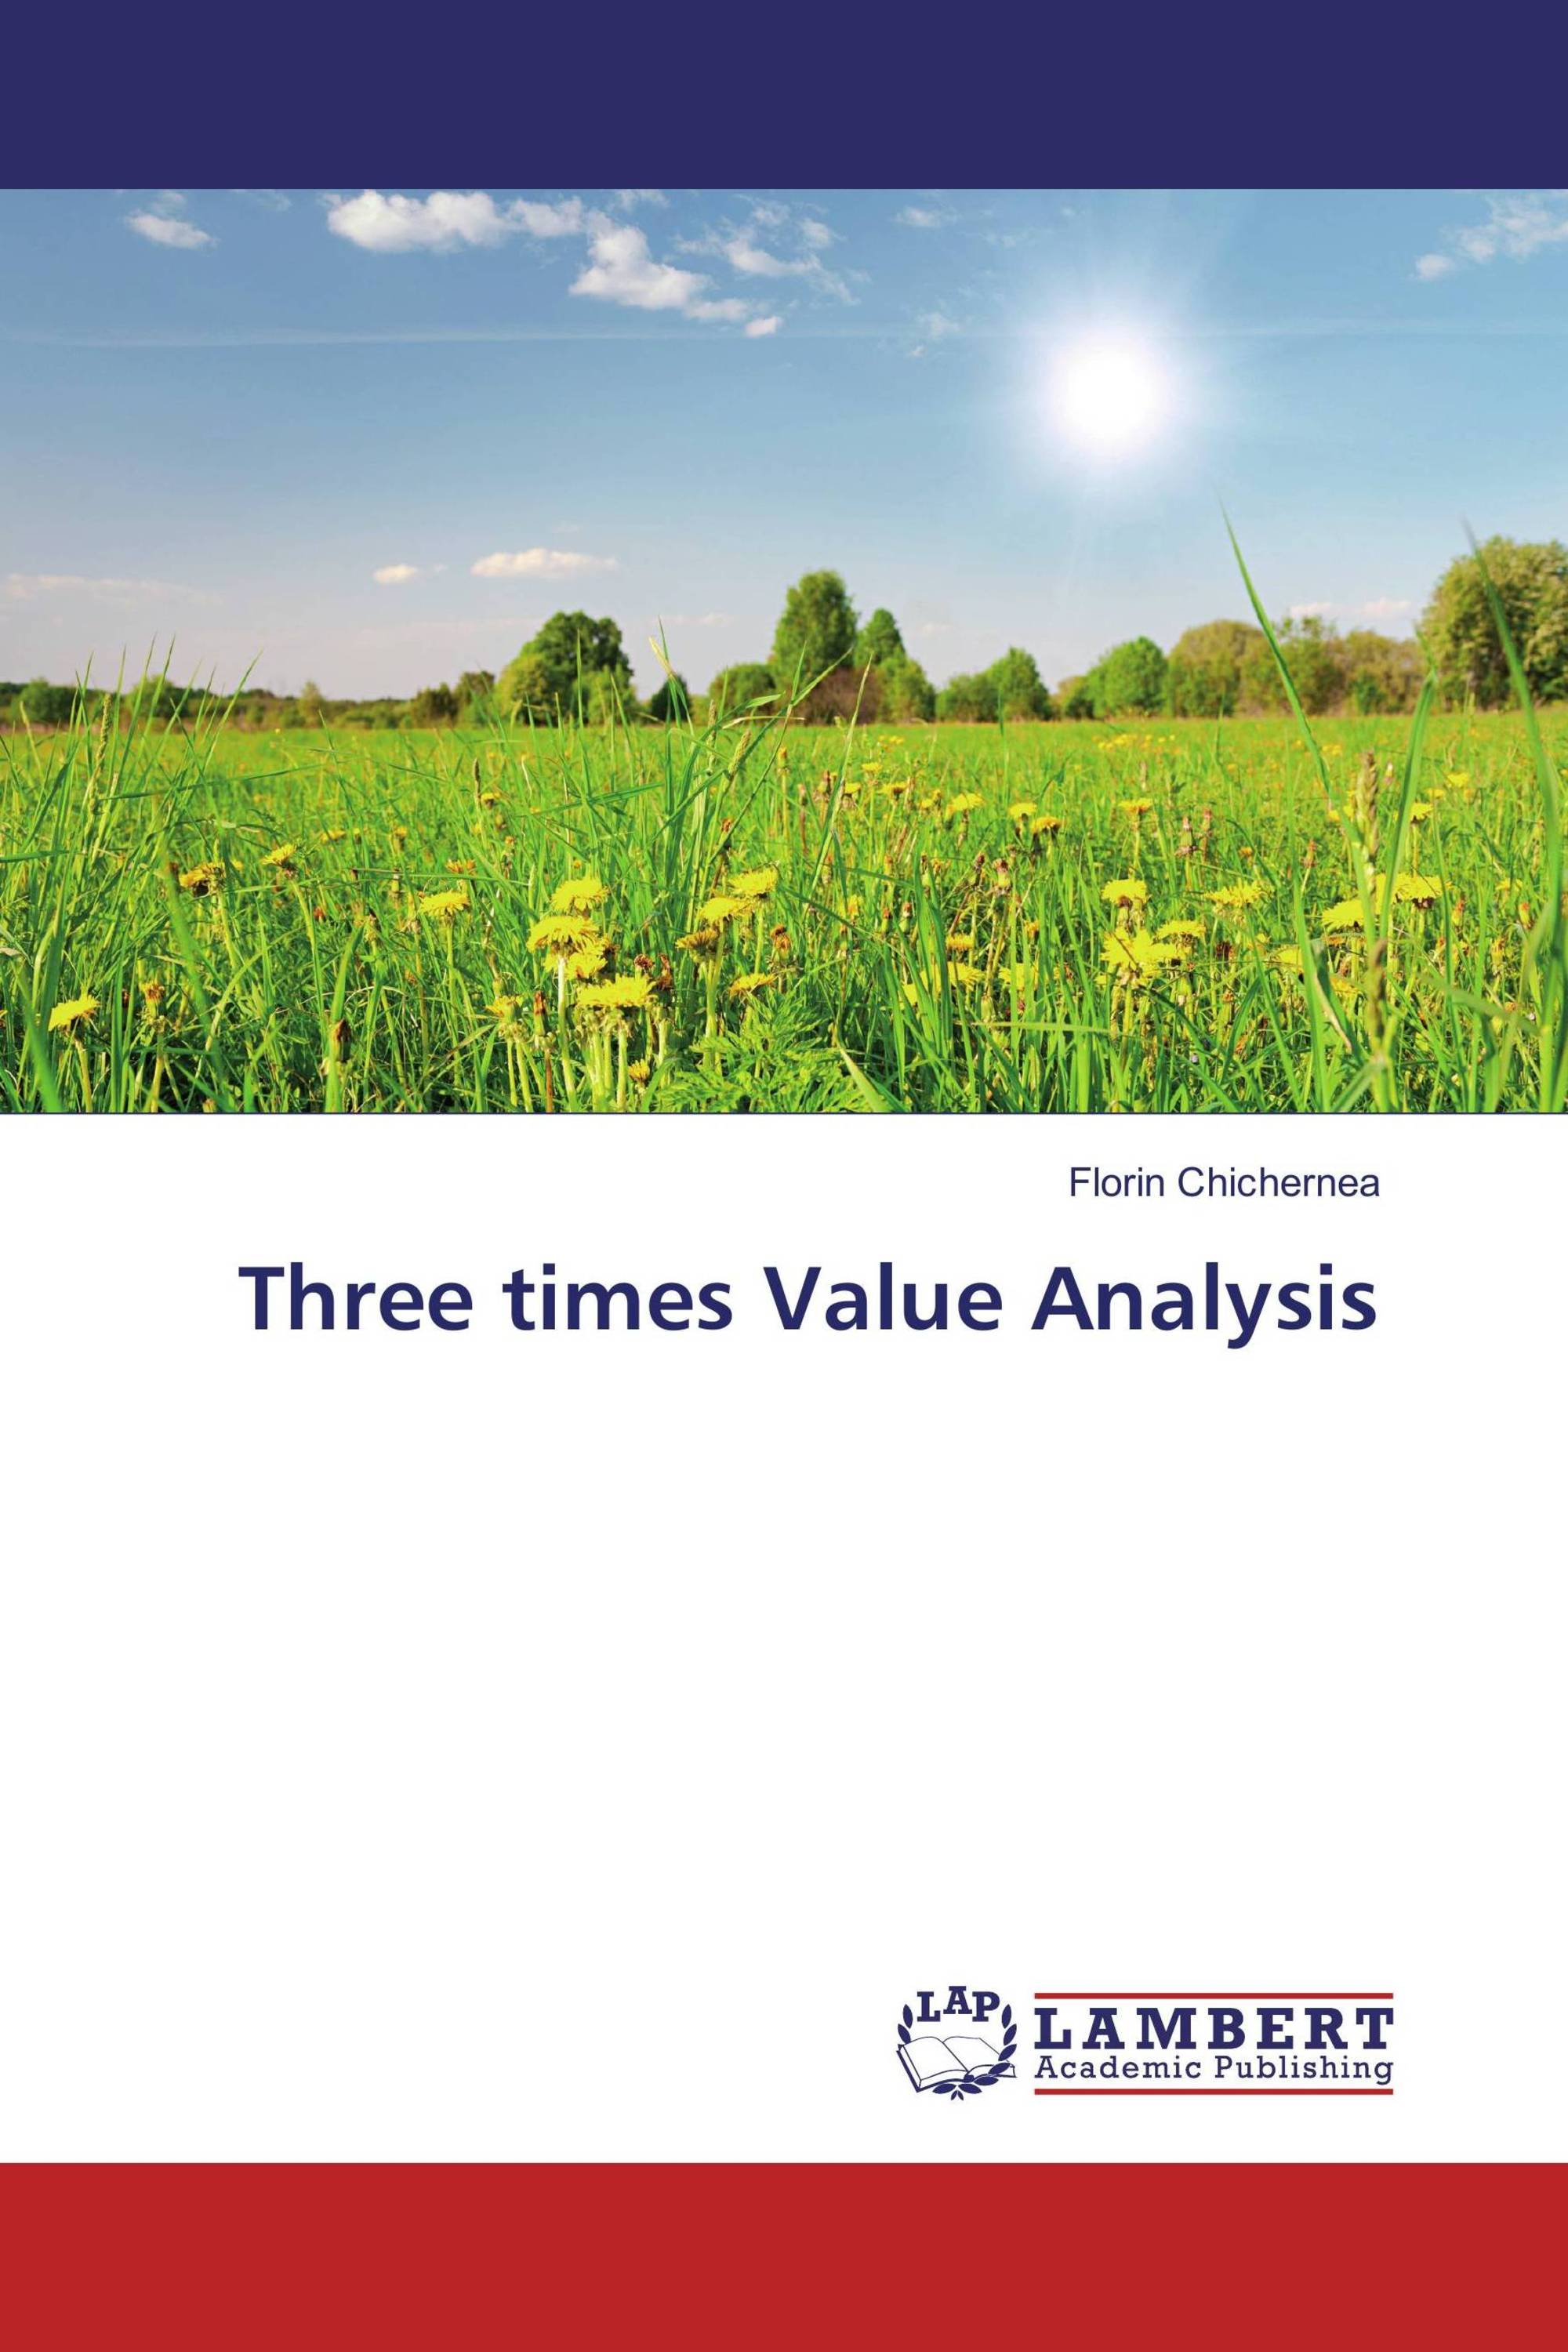 Three times Value Analysis